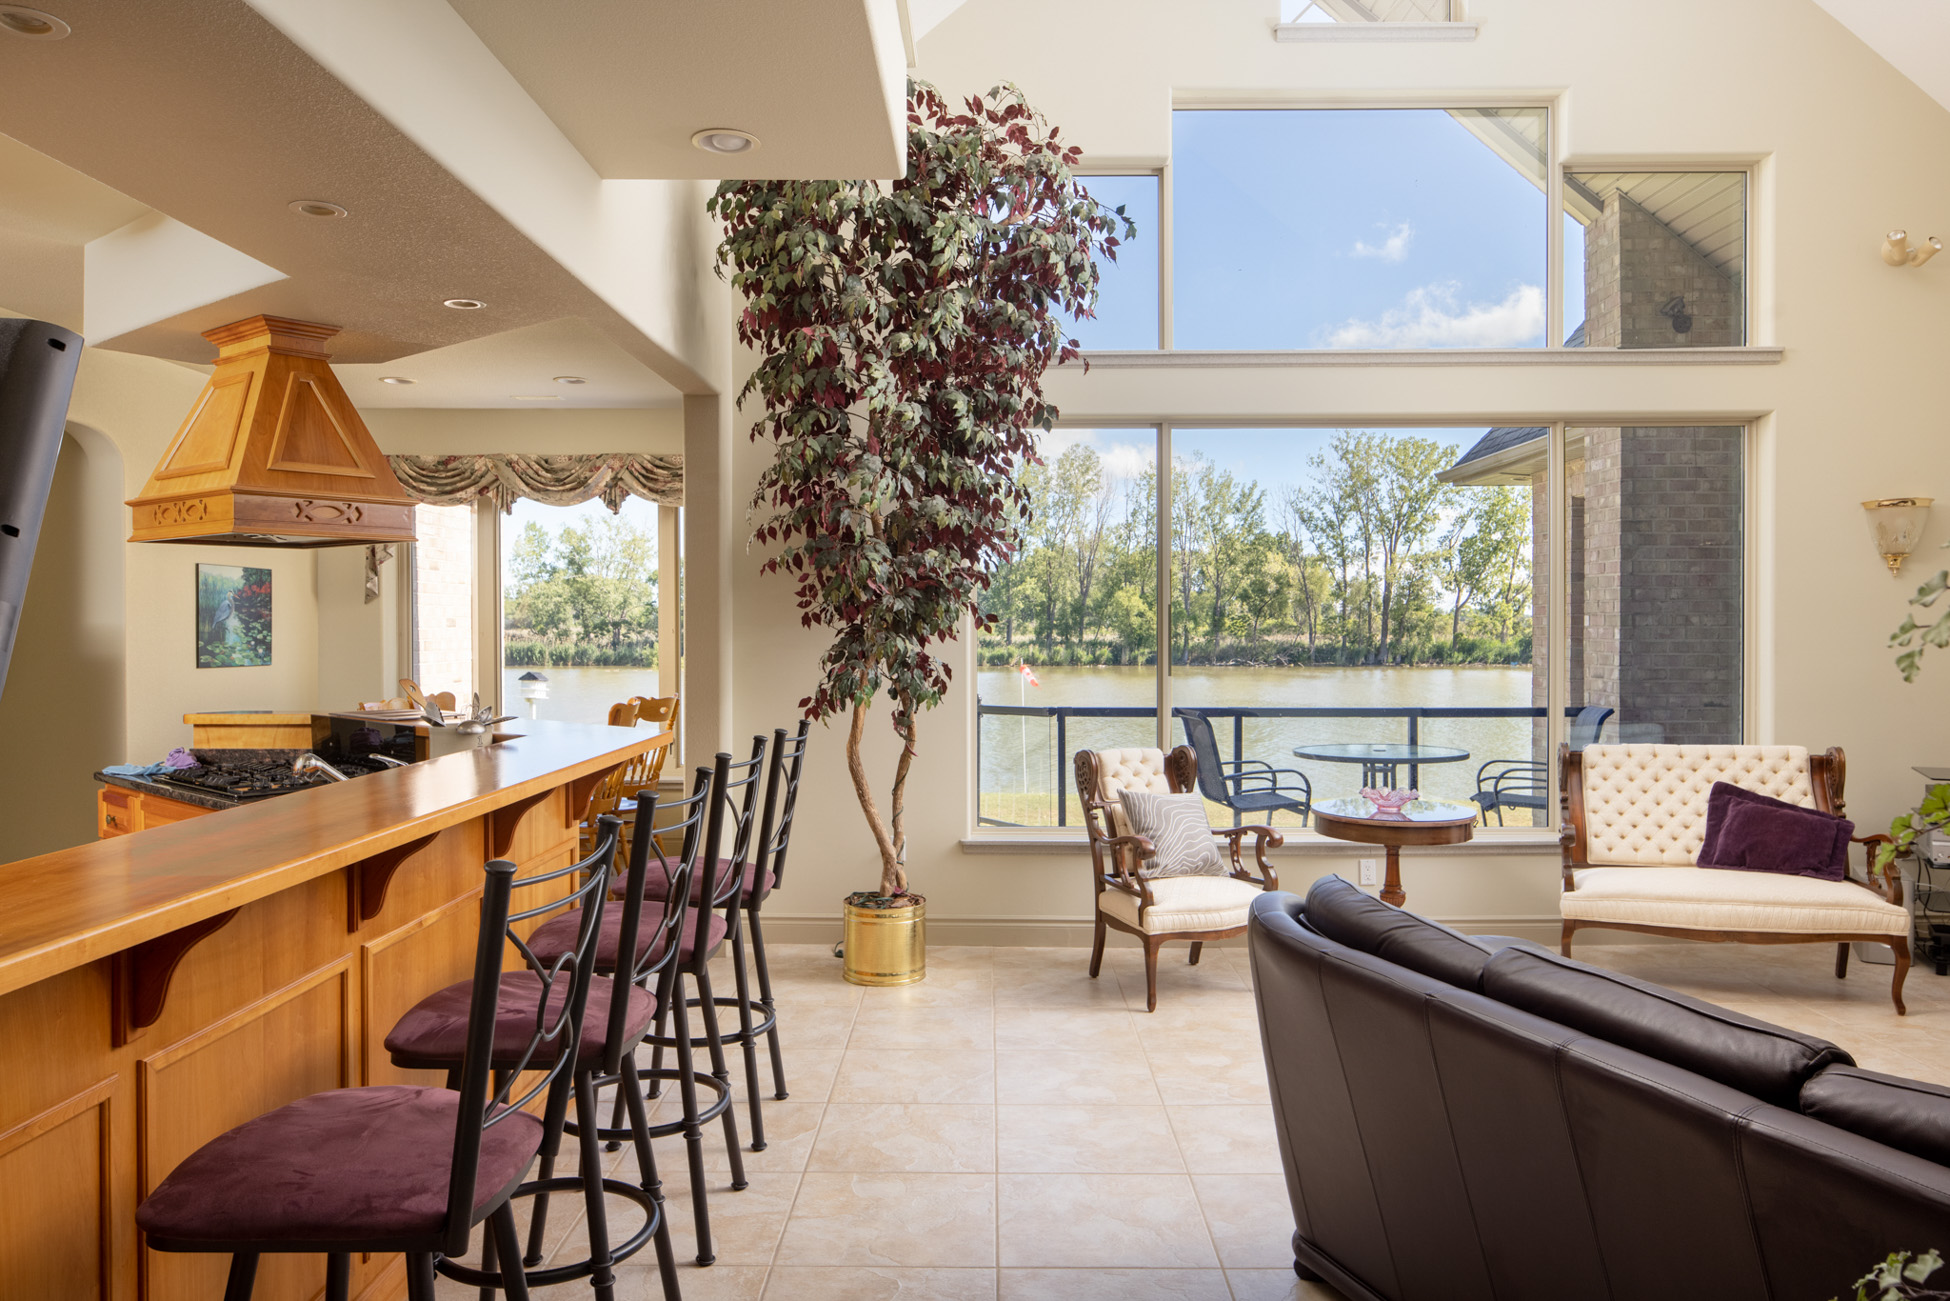 Living room interior with water view and eat-in kitchen island